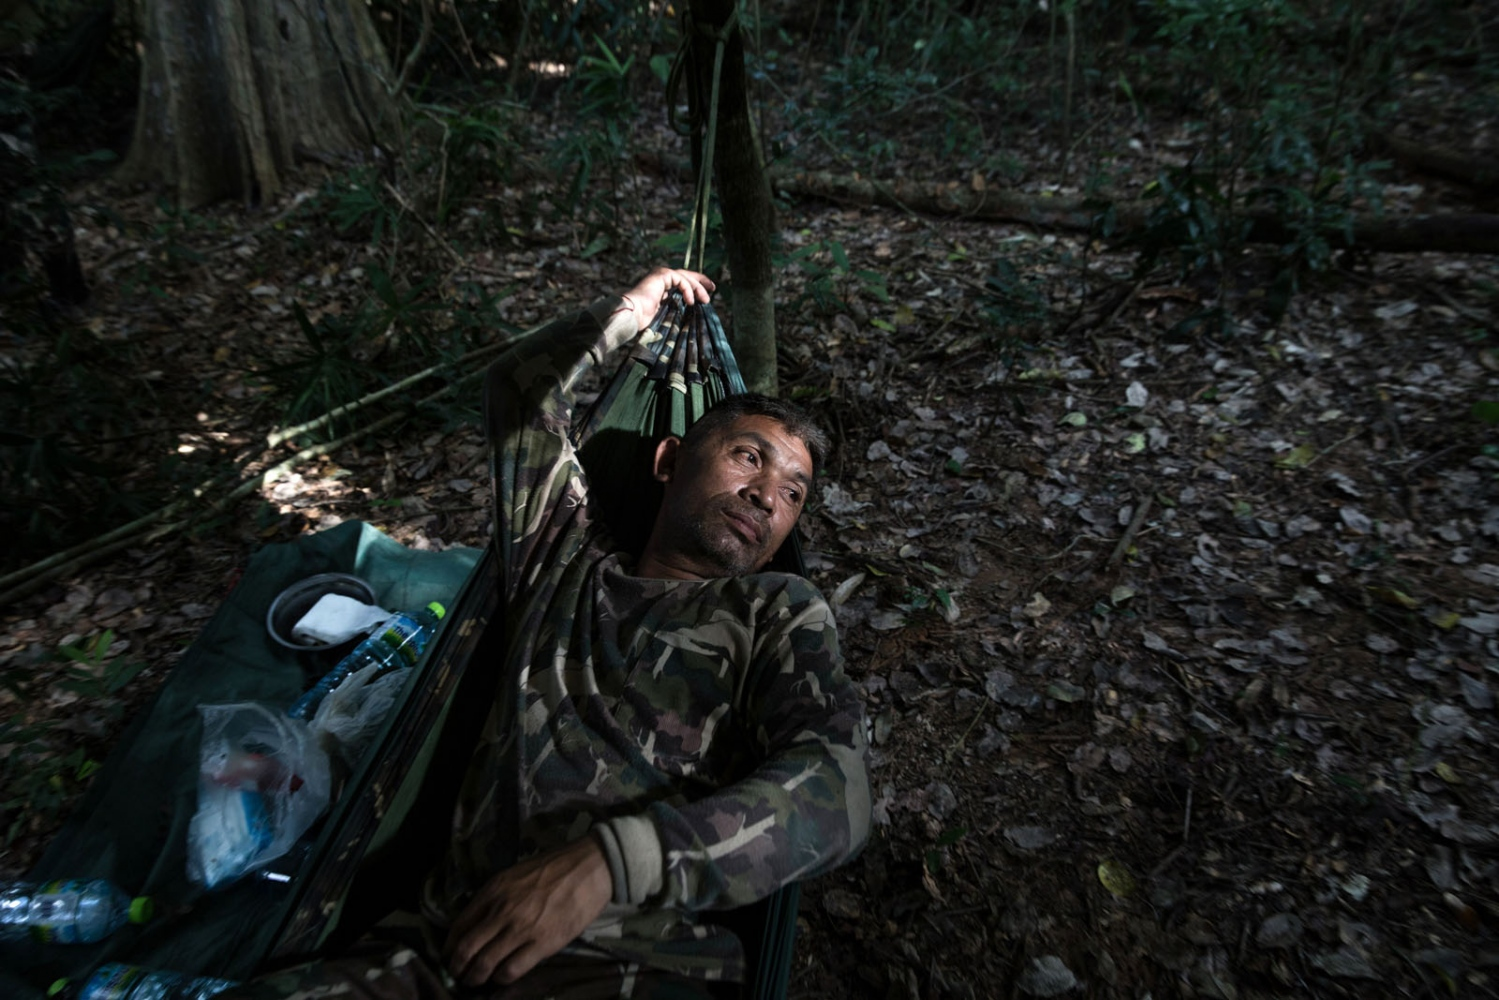 Ex-poacher Uten Pranpan, 46, made the decision to give up his old ways and instead protect the forest. Here he rests in a hammock during a 3-day patrol as part of a new recruit training course in eastern Thailand. Ta Praya National Park, Sa Kaew Province - September 2018